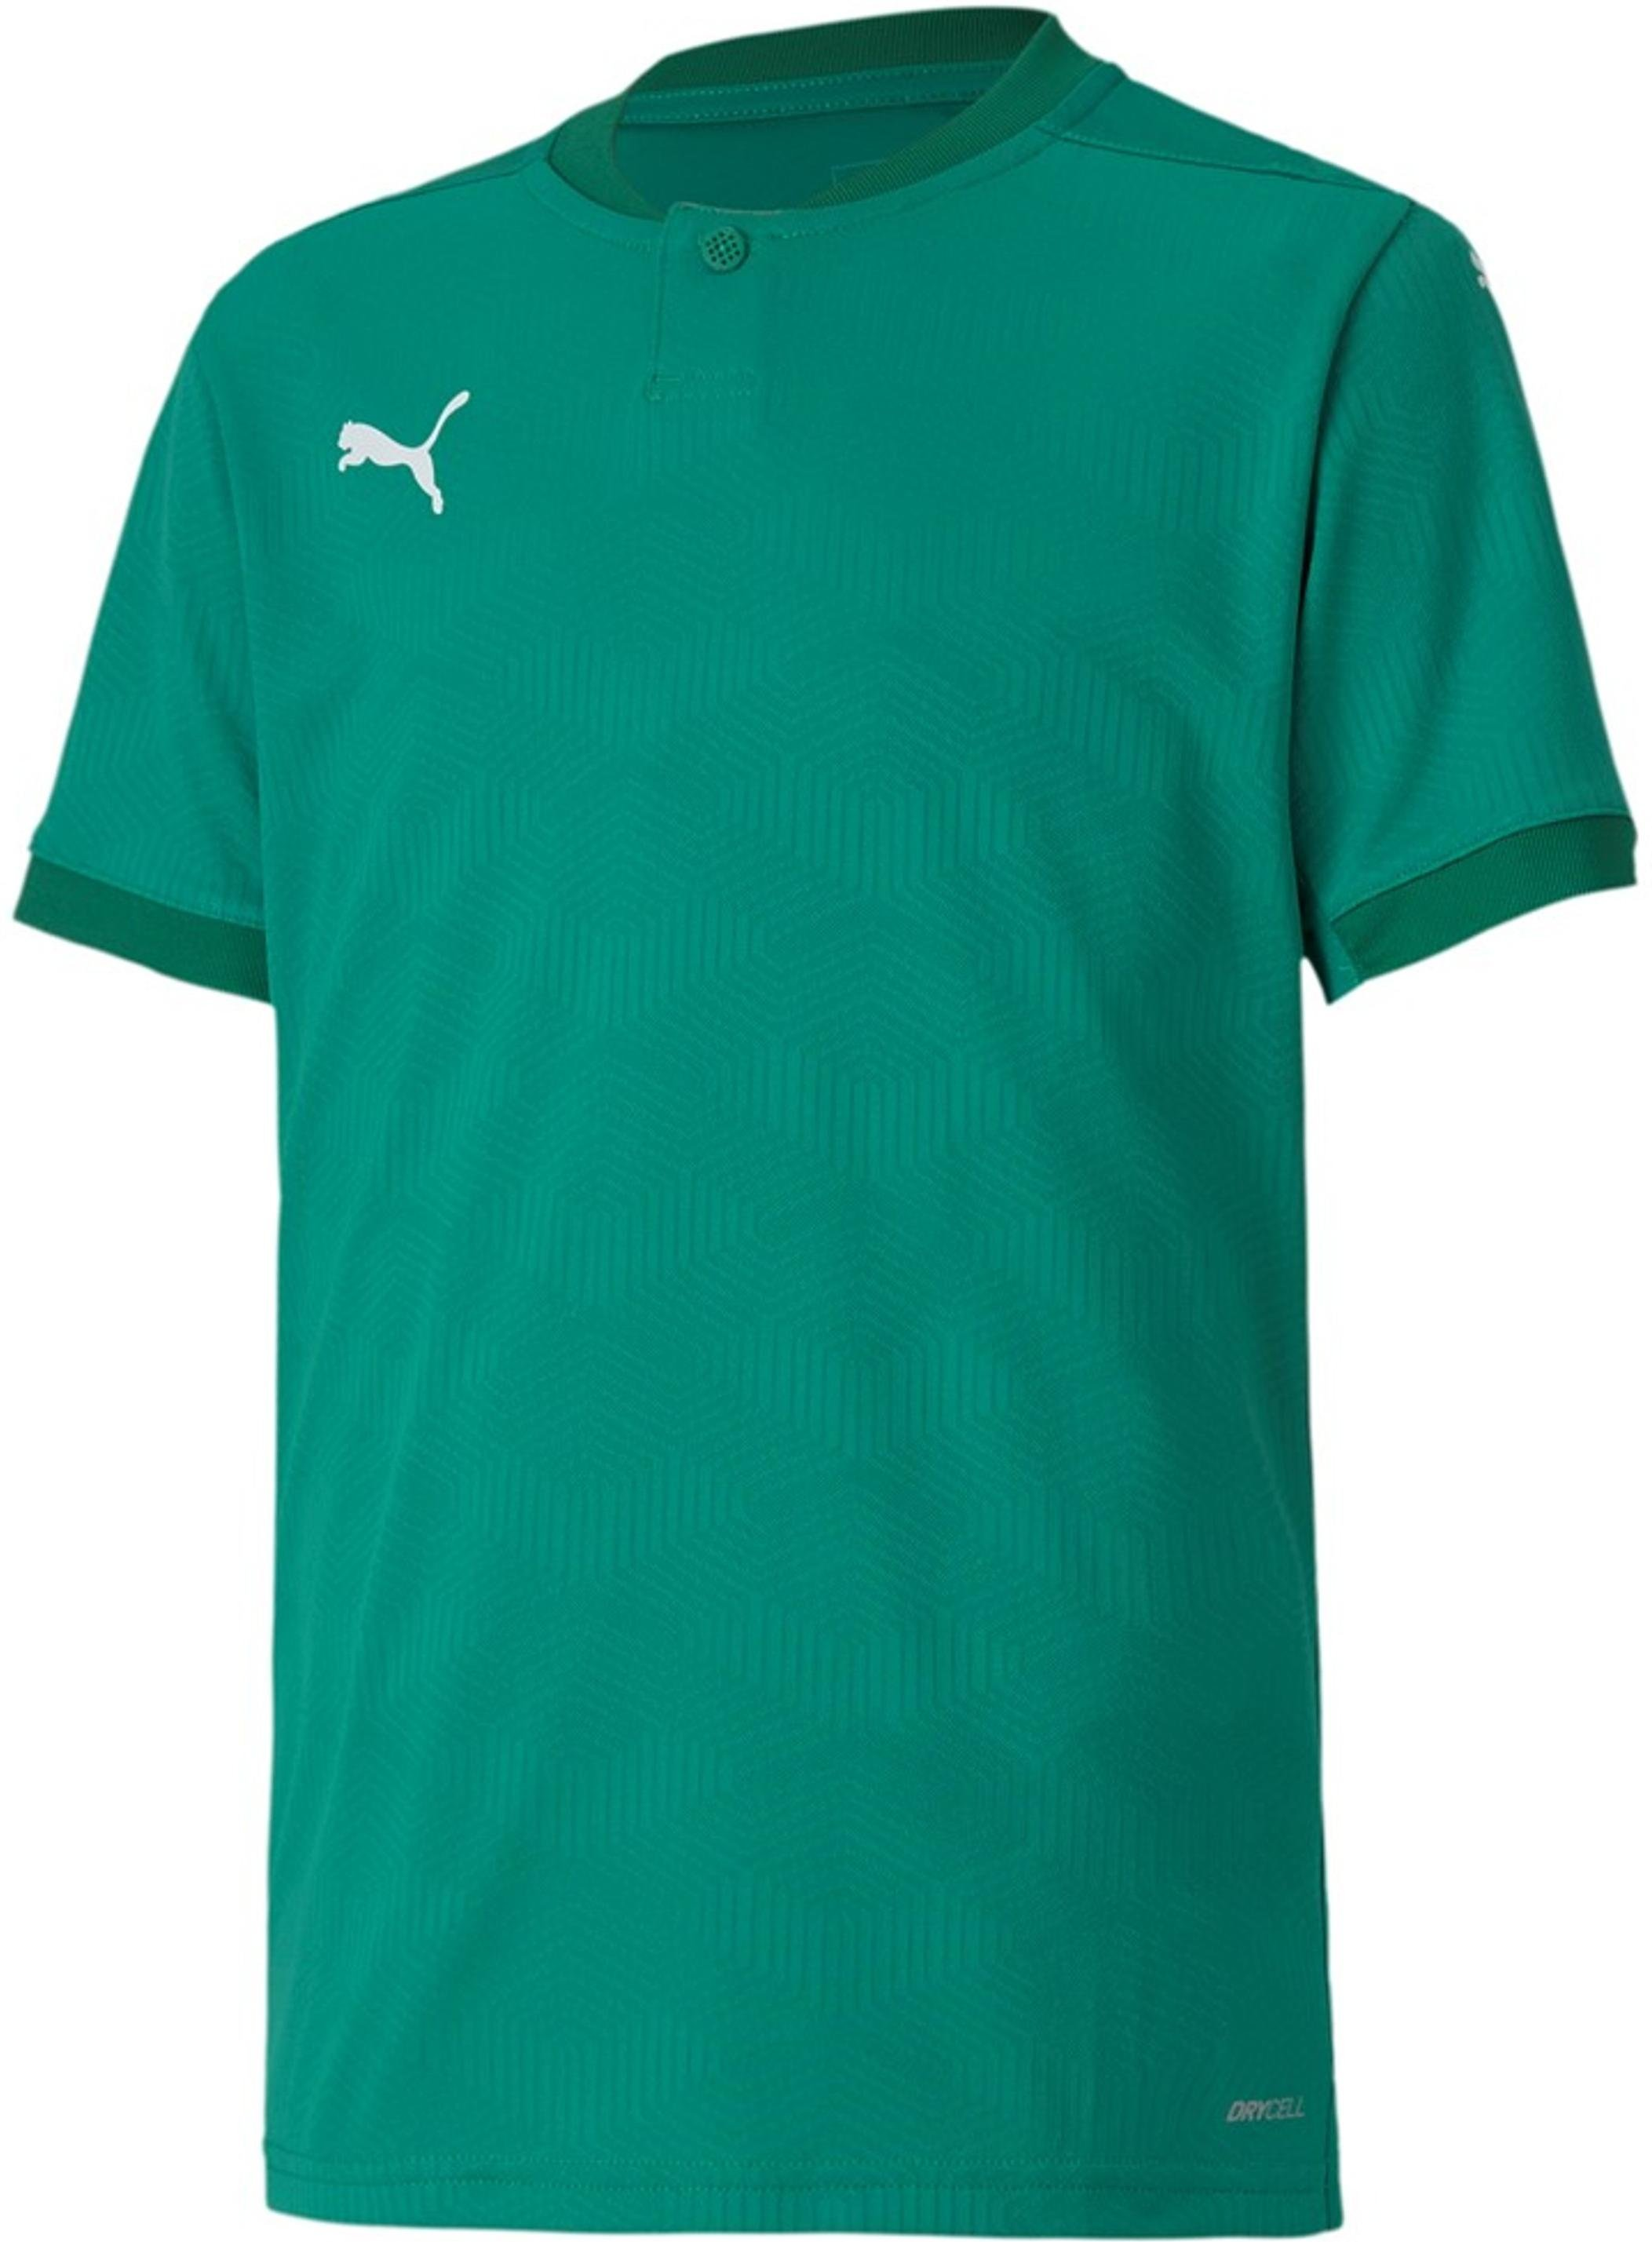 https://i1.t4s.cz/products/704367-005/puma-teamfinal-21-jersey-jr-261151-704367-005.jpg